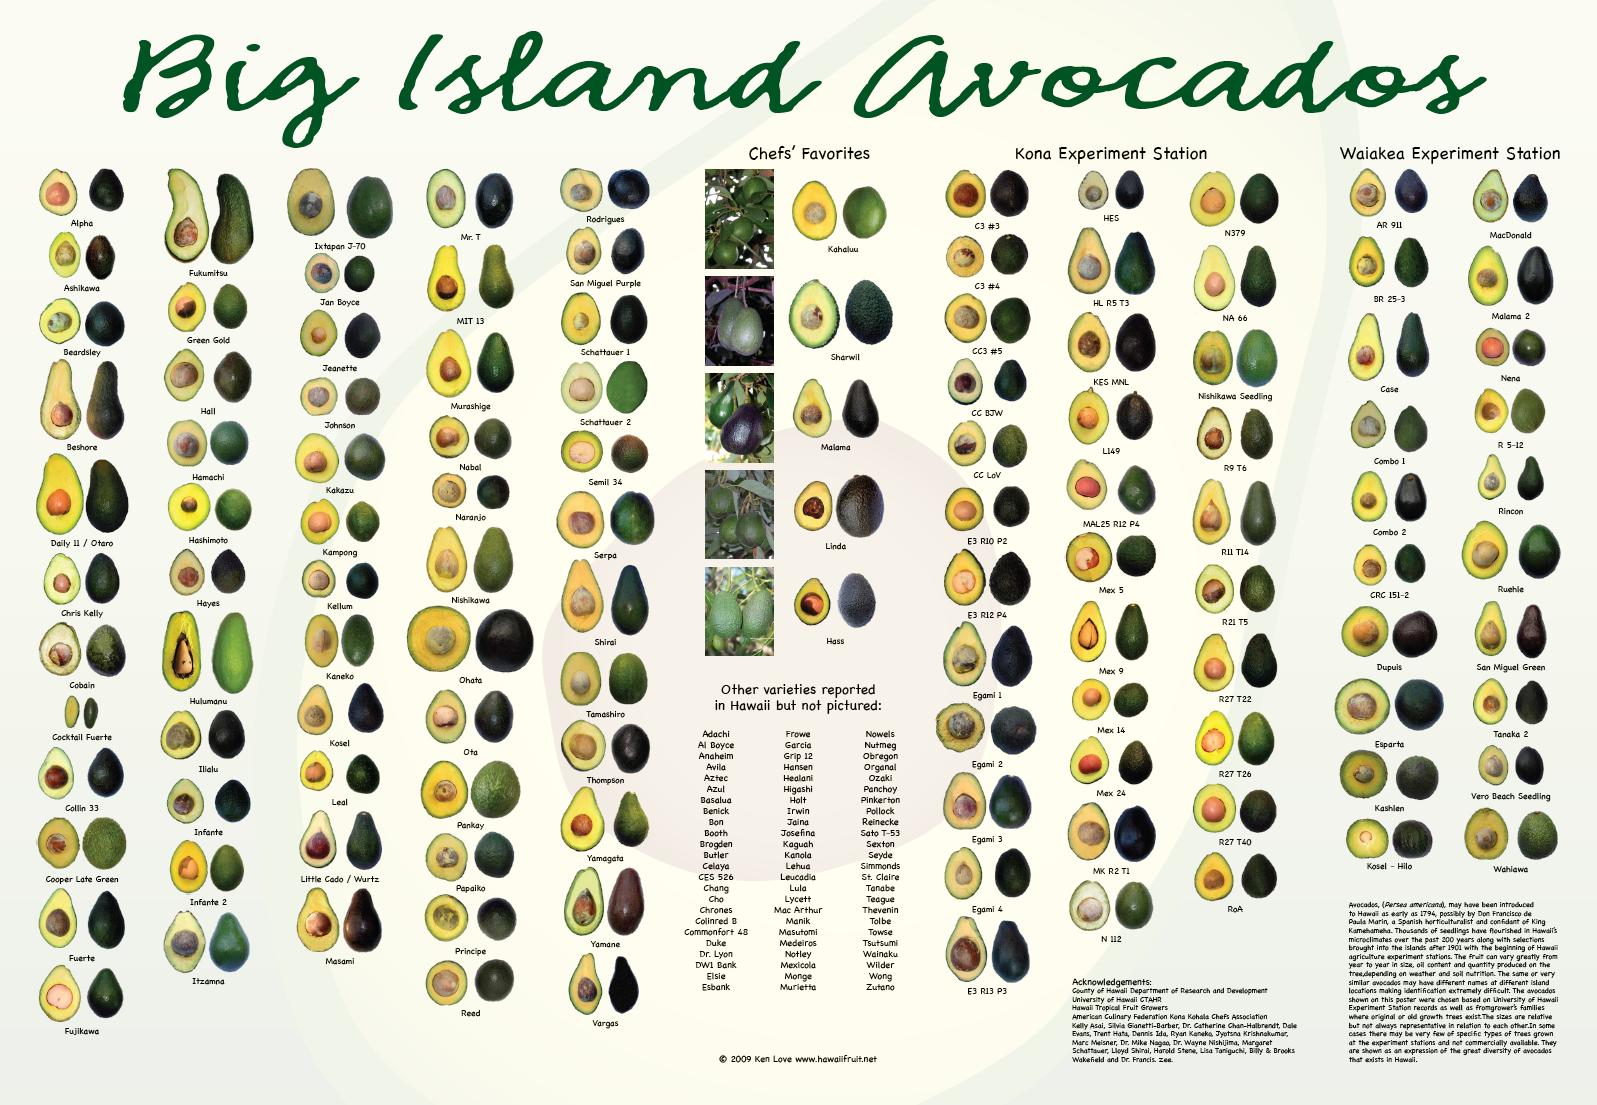 Avocado varieties (1)